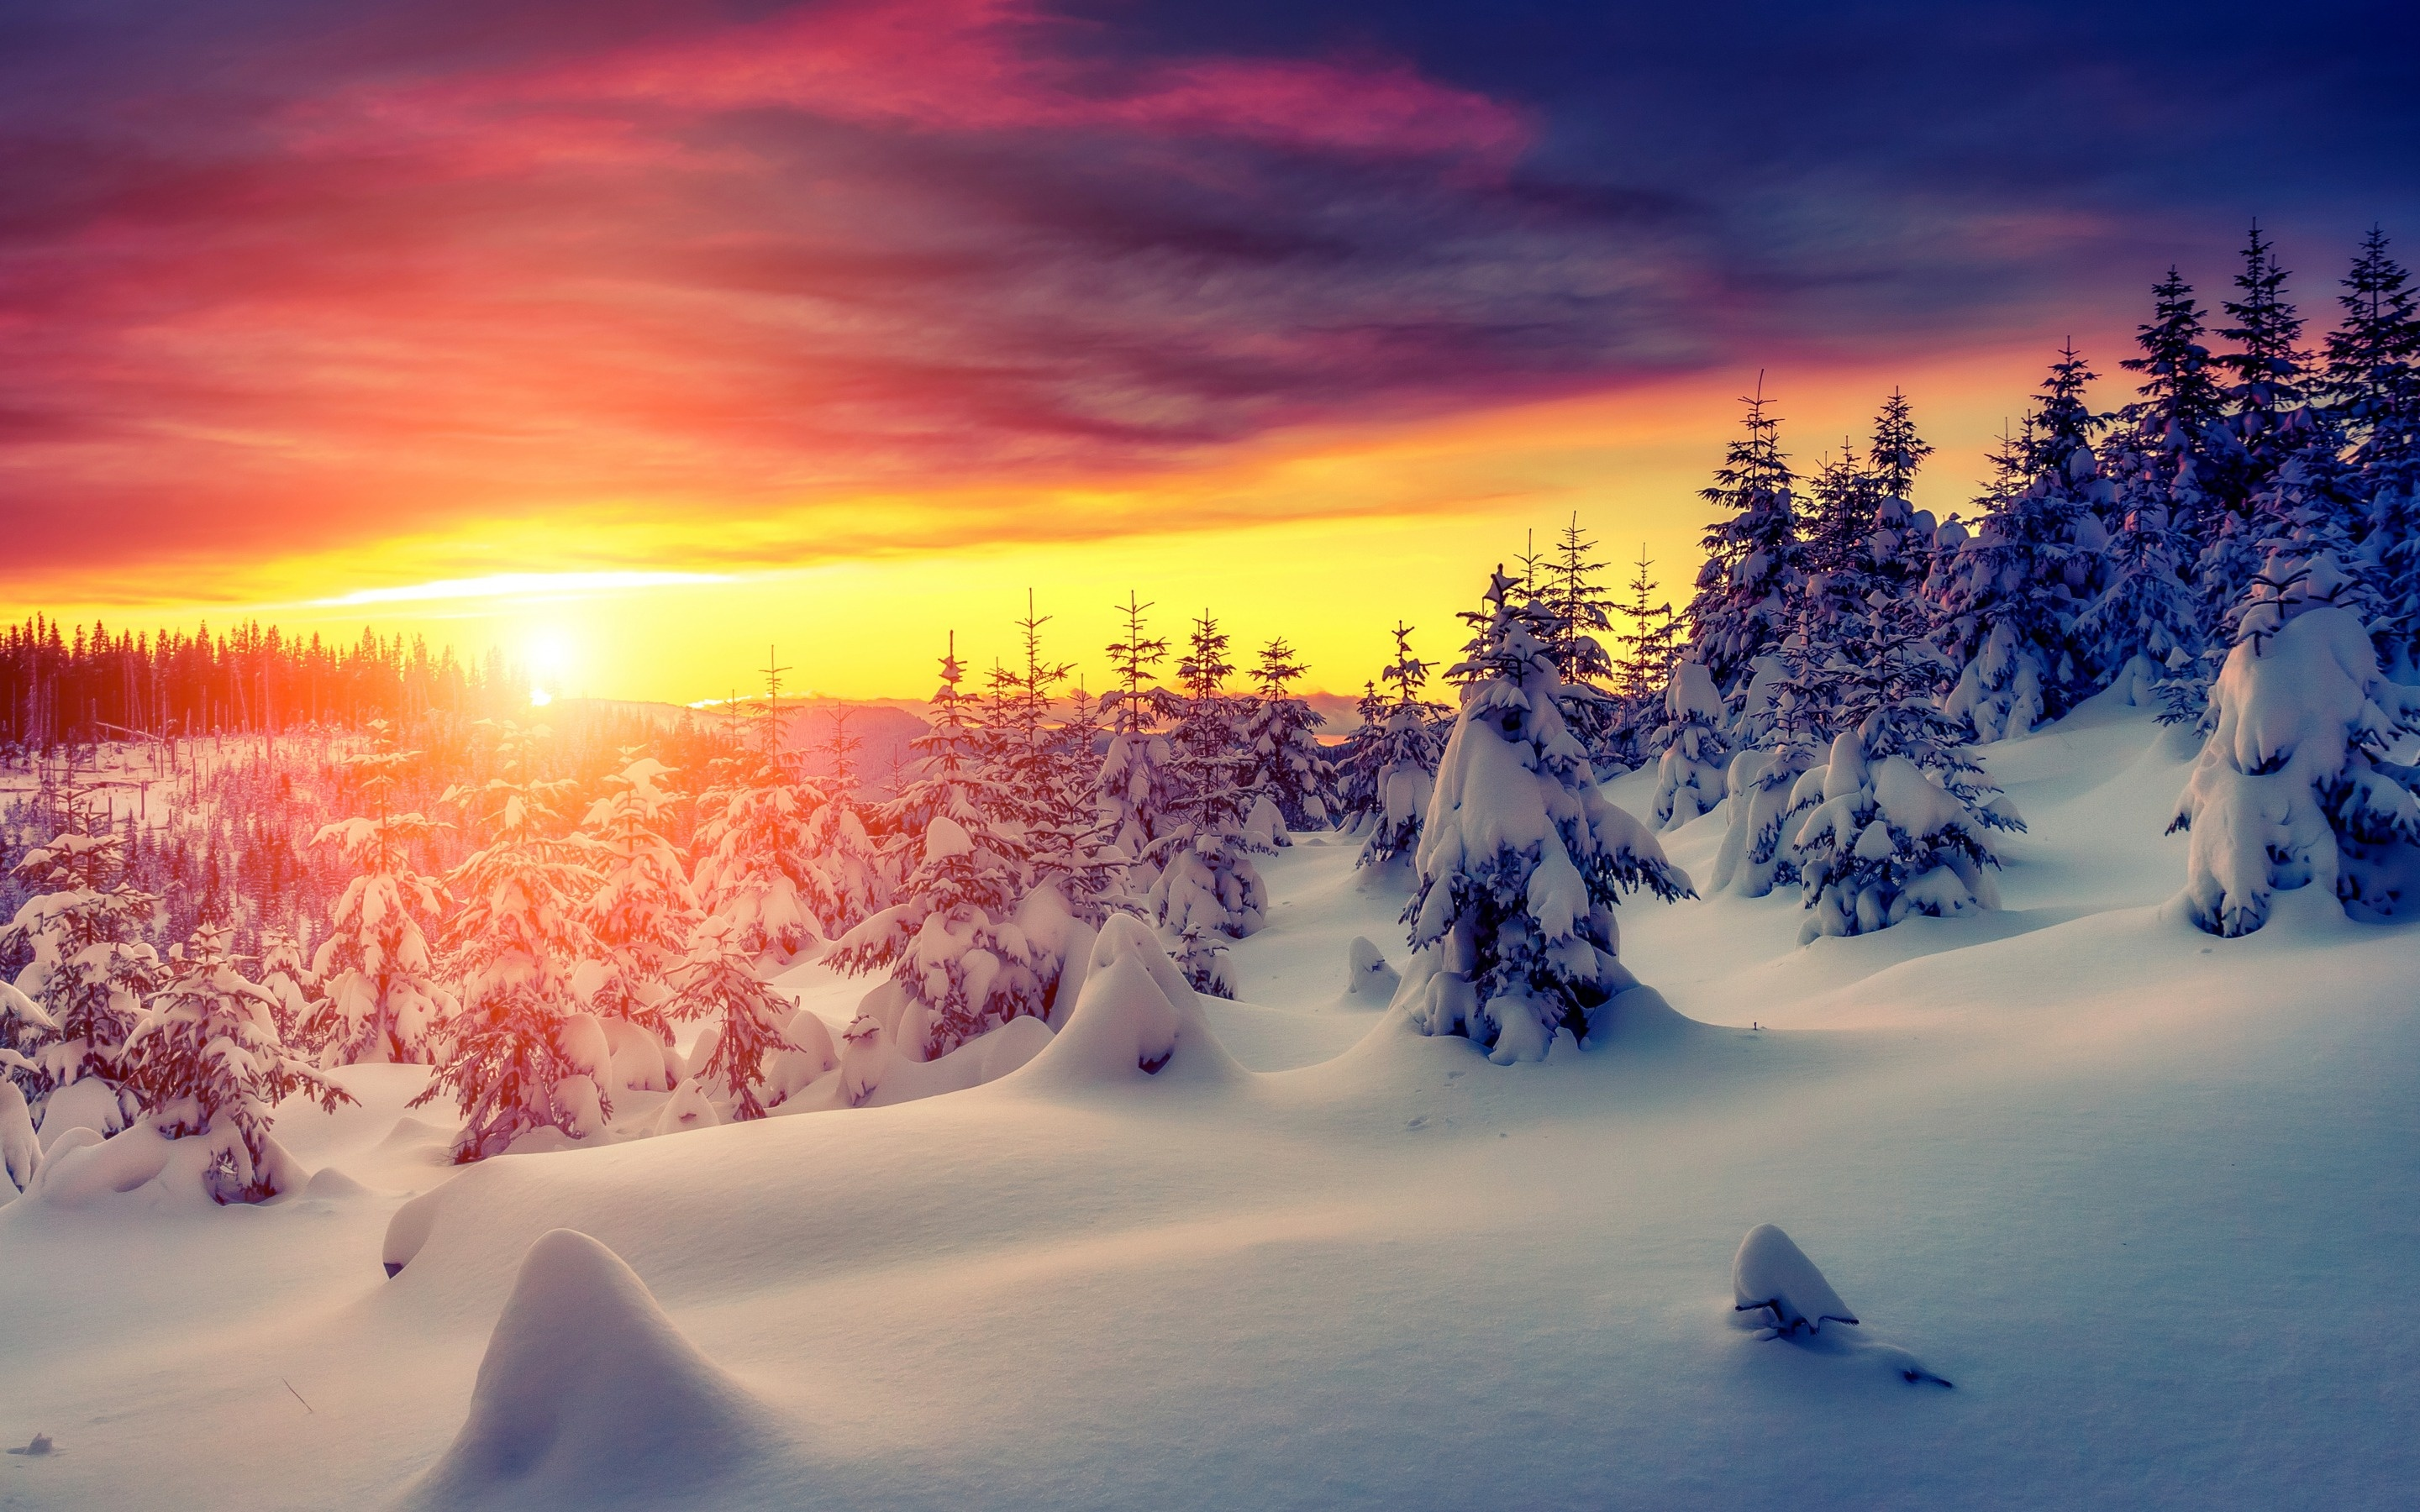 winter snow sunset landscape wallpapers - 2880x1800 - 1581678